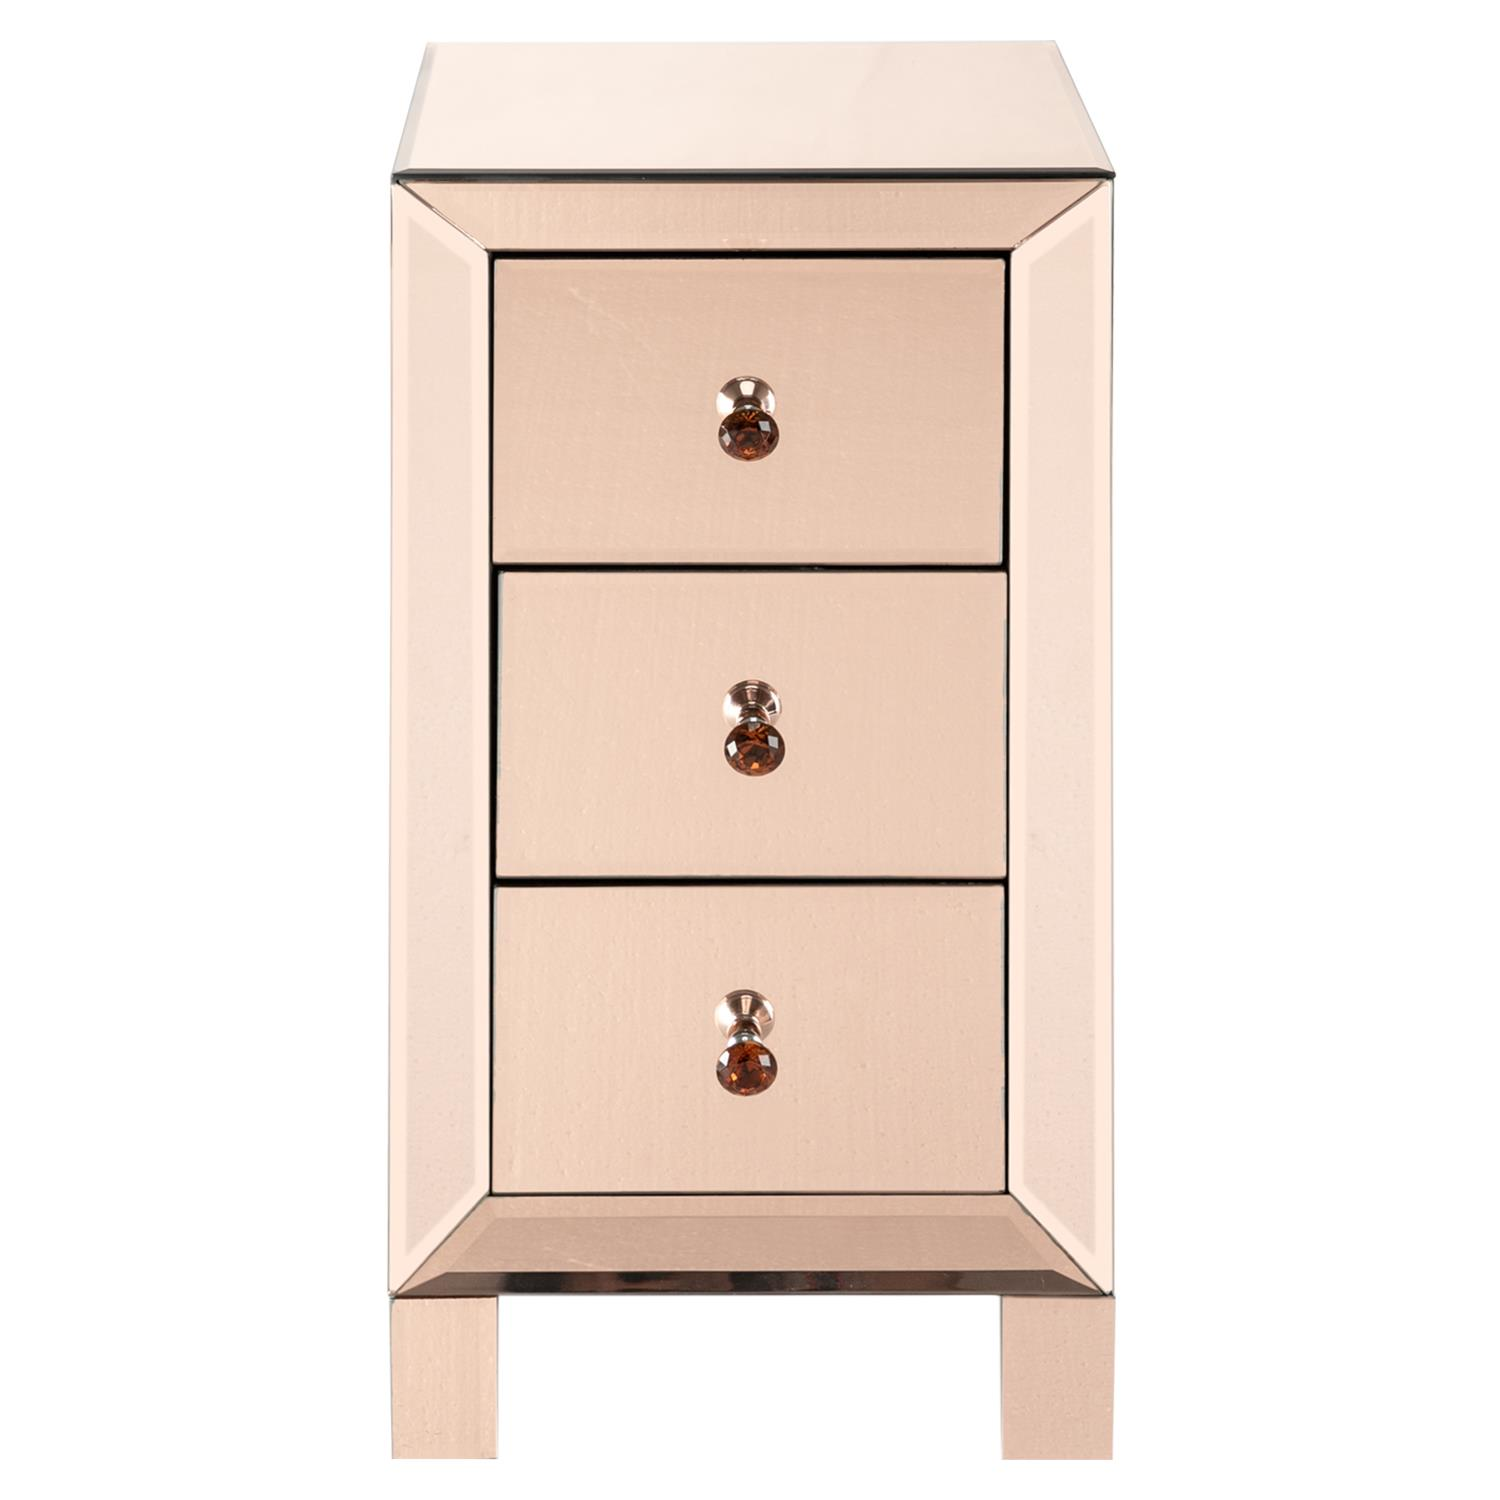 Ktaxon 3 Drawer Mirrored End Table Nightstand Glass Bedside Table Furniture For Bedroom Living Room Champagne Walmart Com Walmart Com